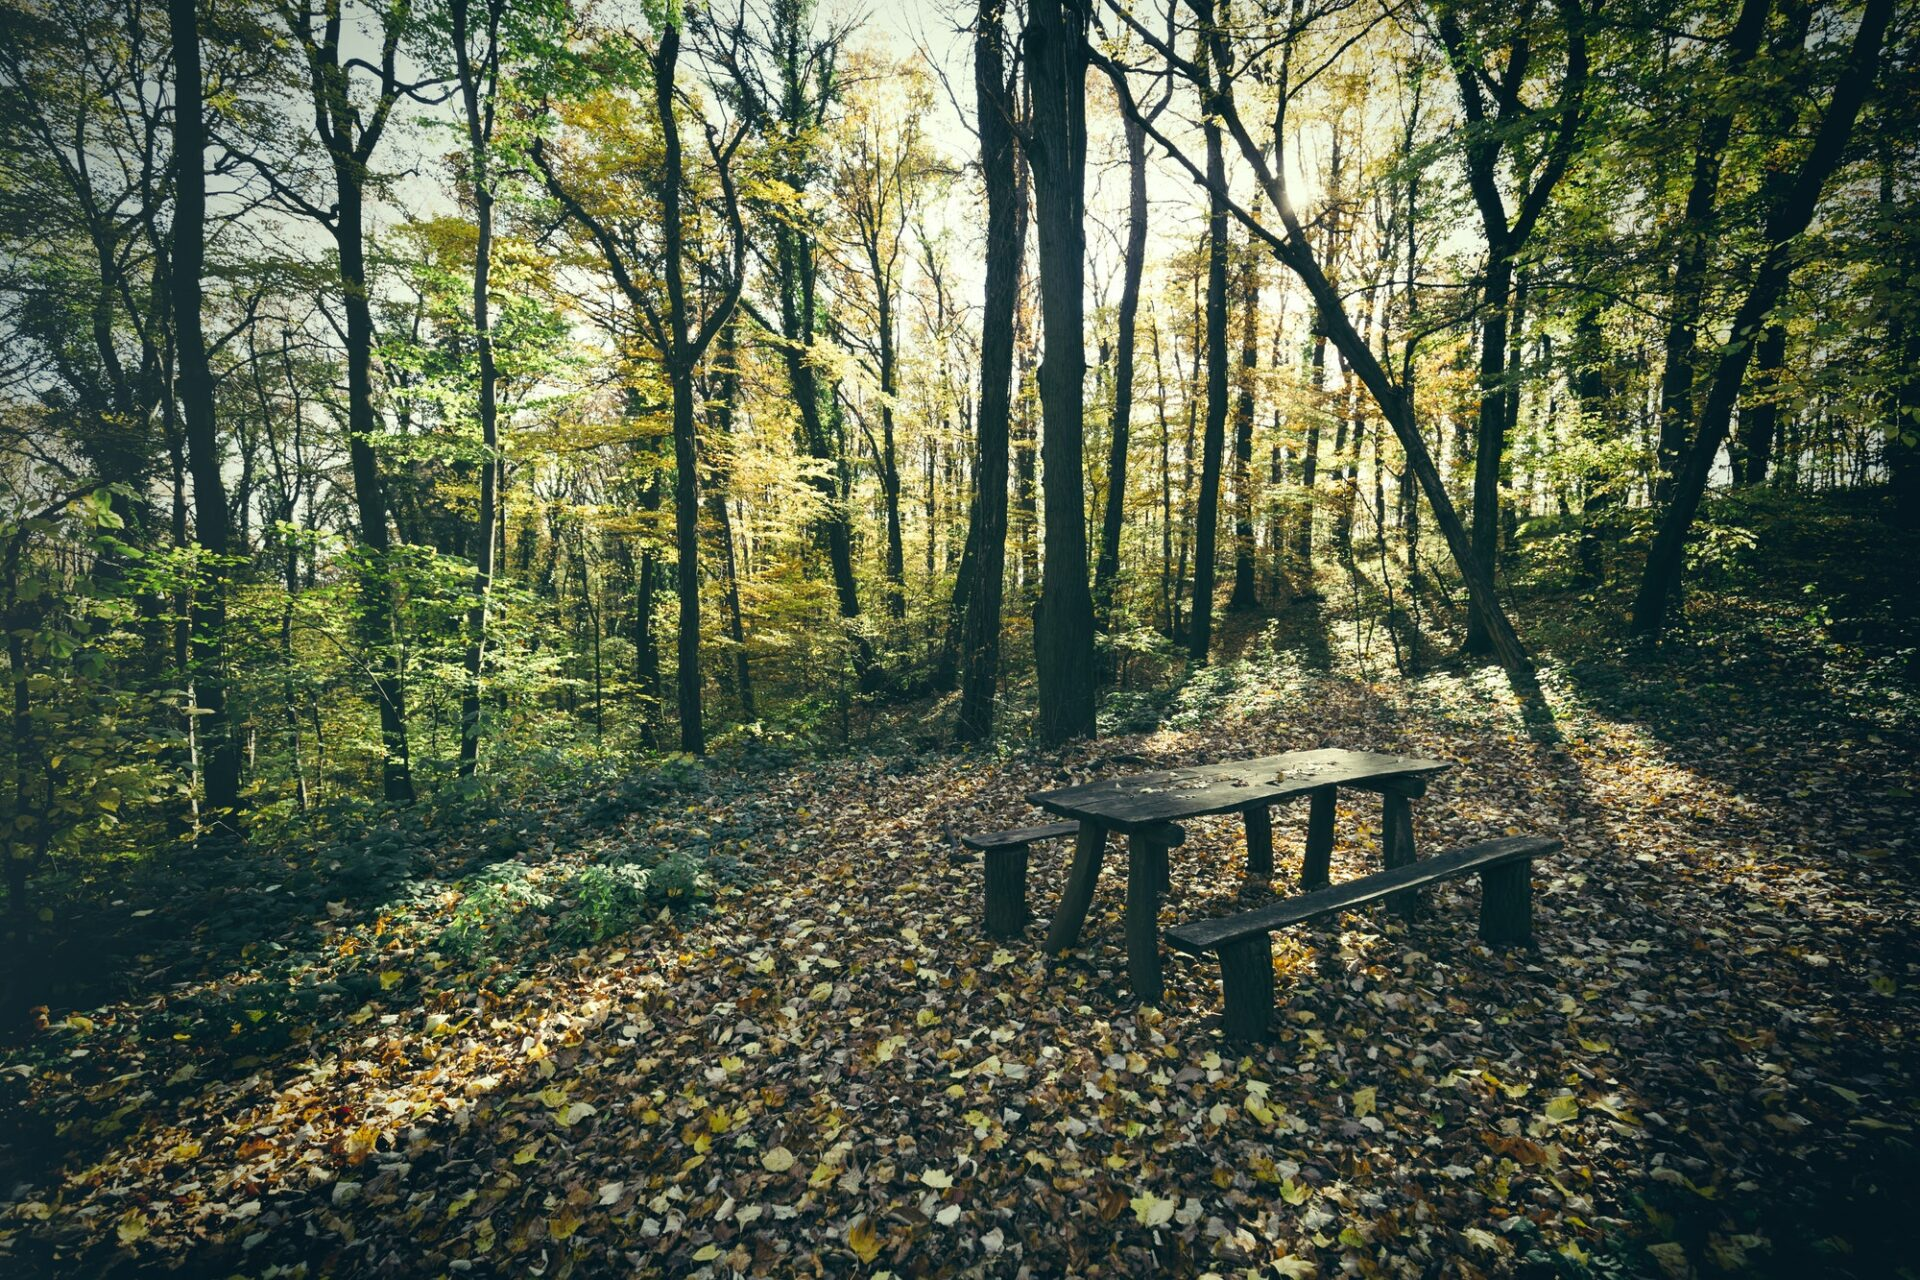 Bench in green forest